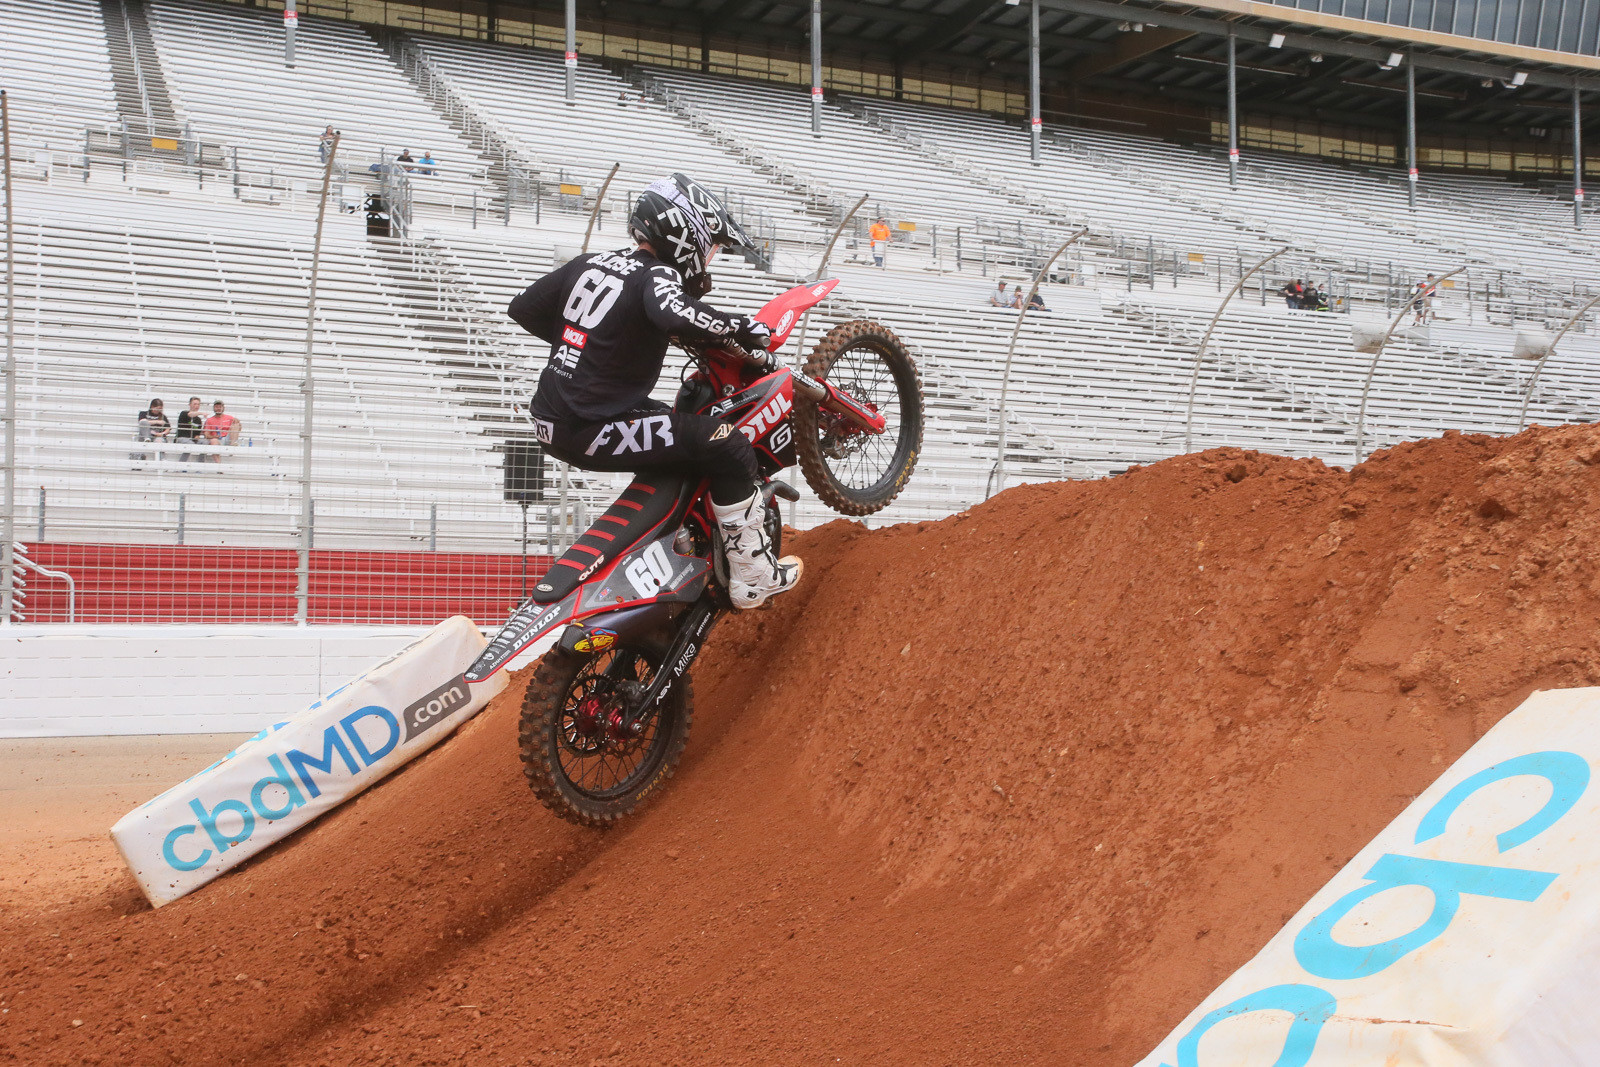 This wall jump was no joke. Get well soon, Chris Blose.